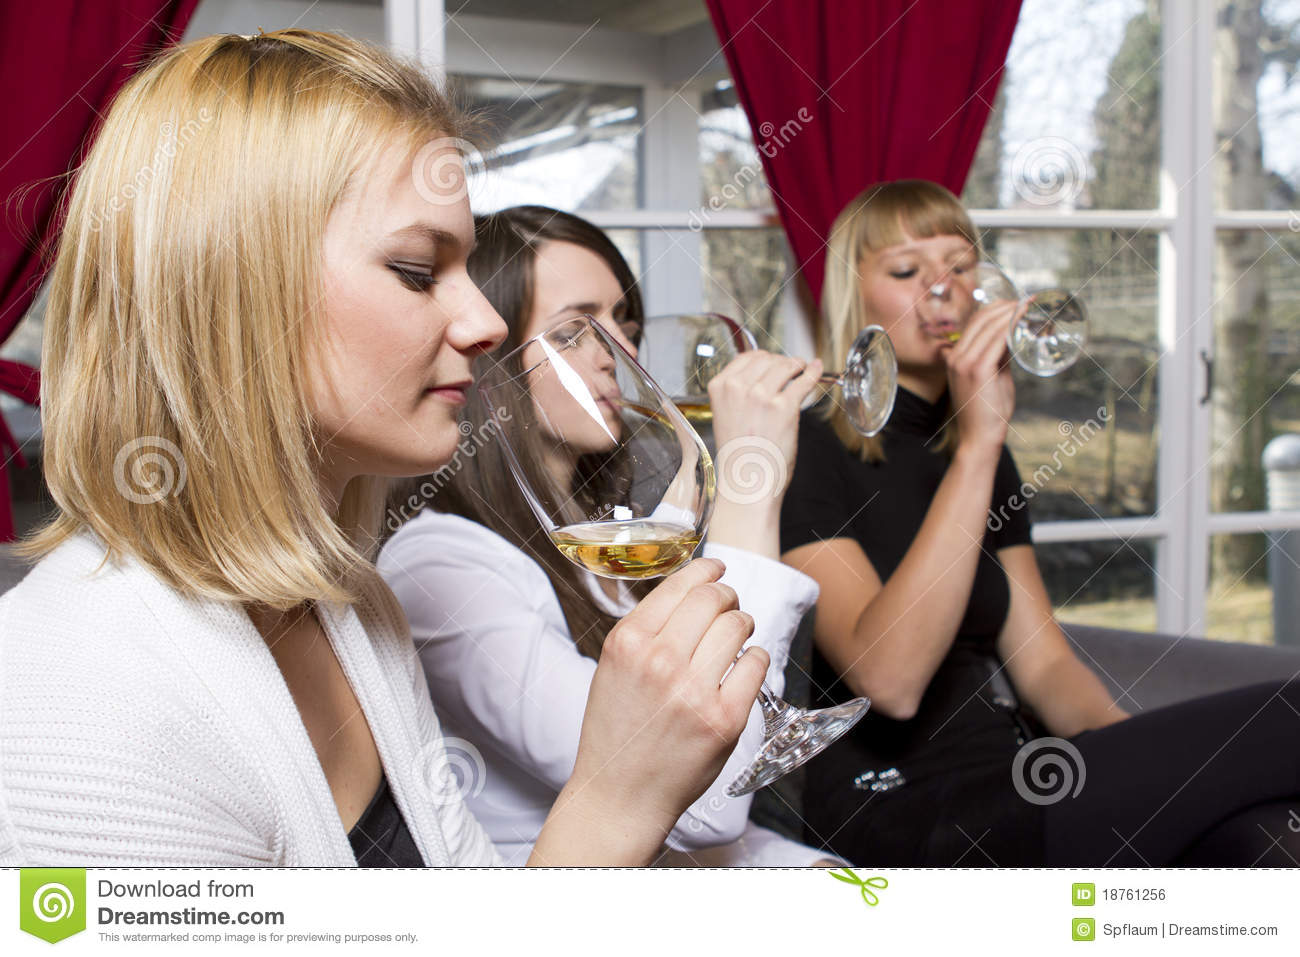 images of women having sex in a restaurant